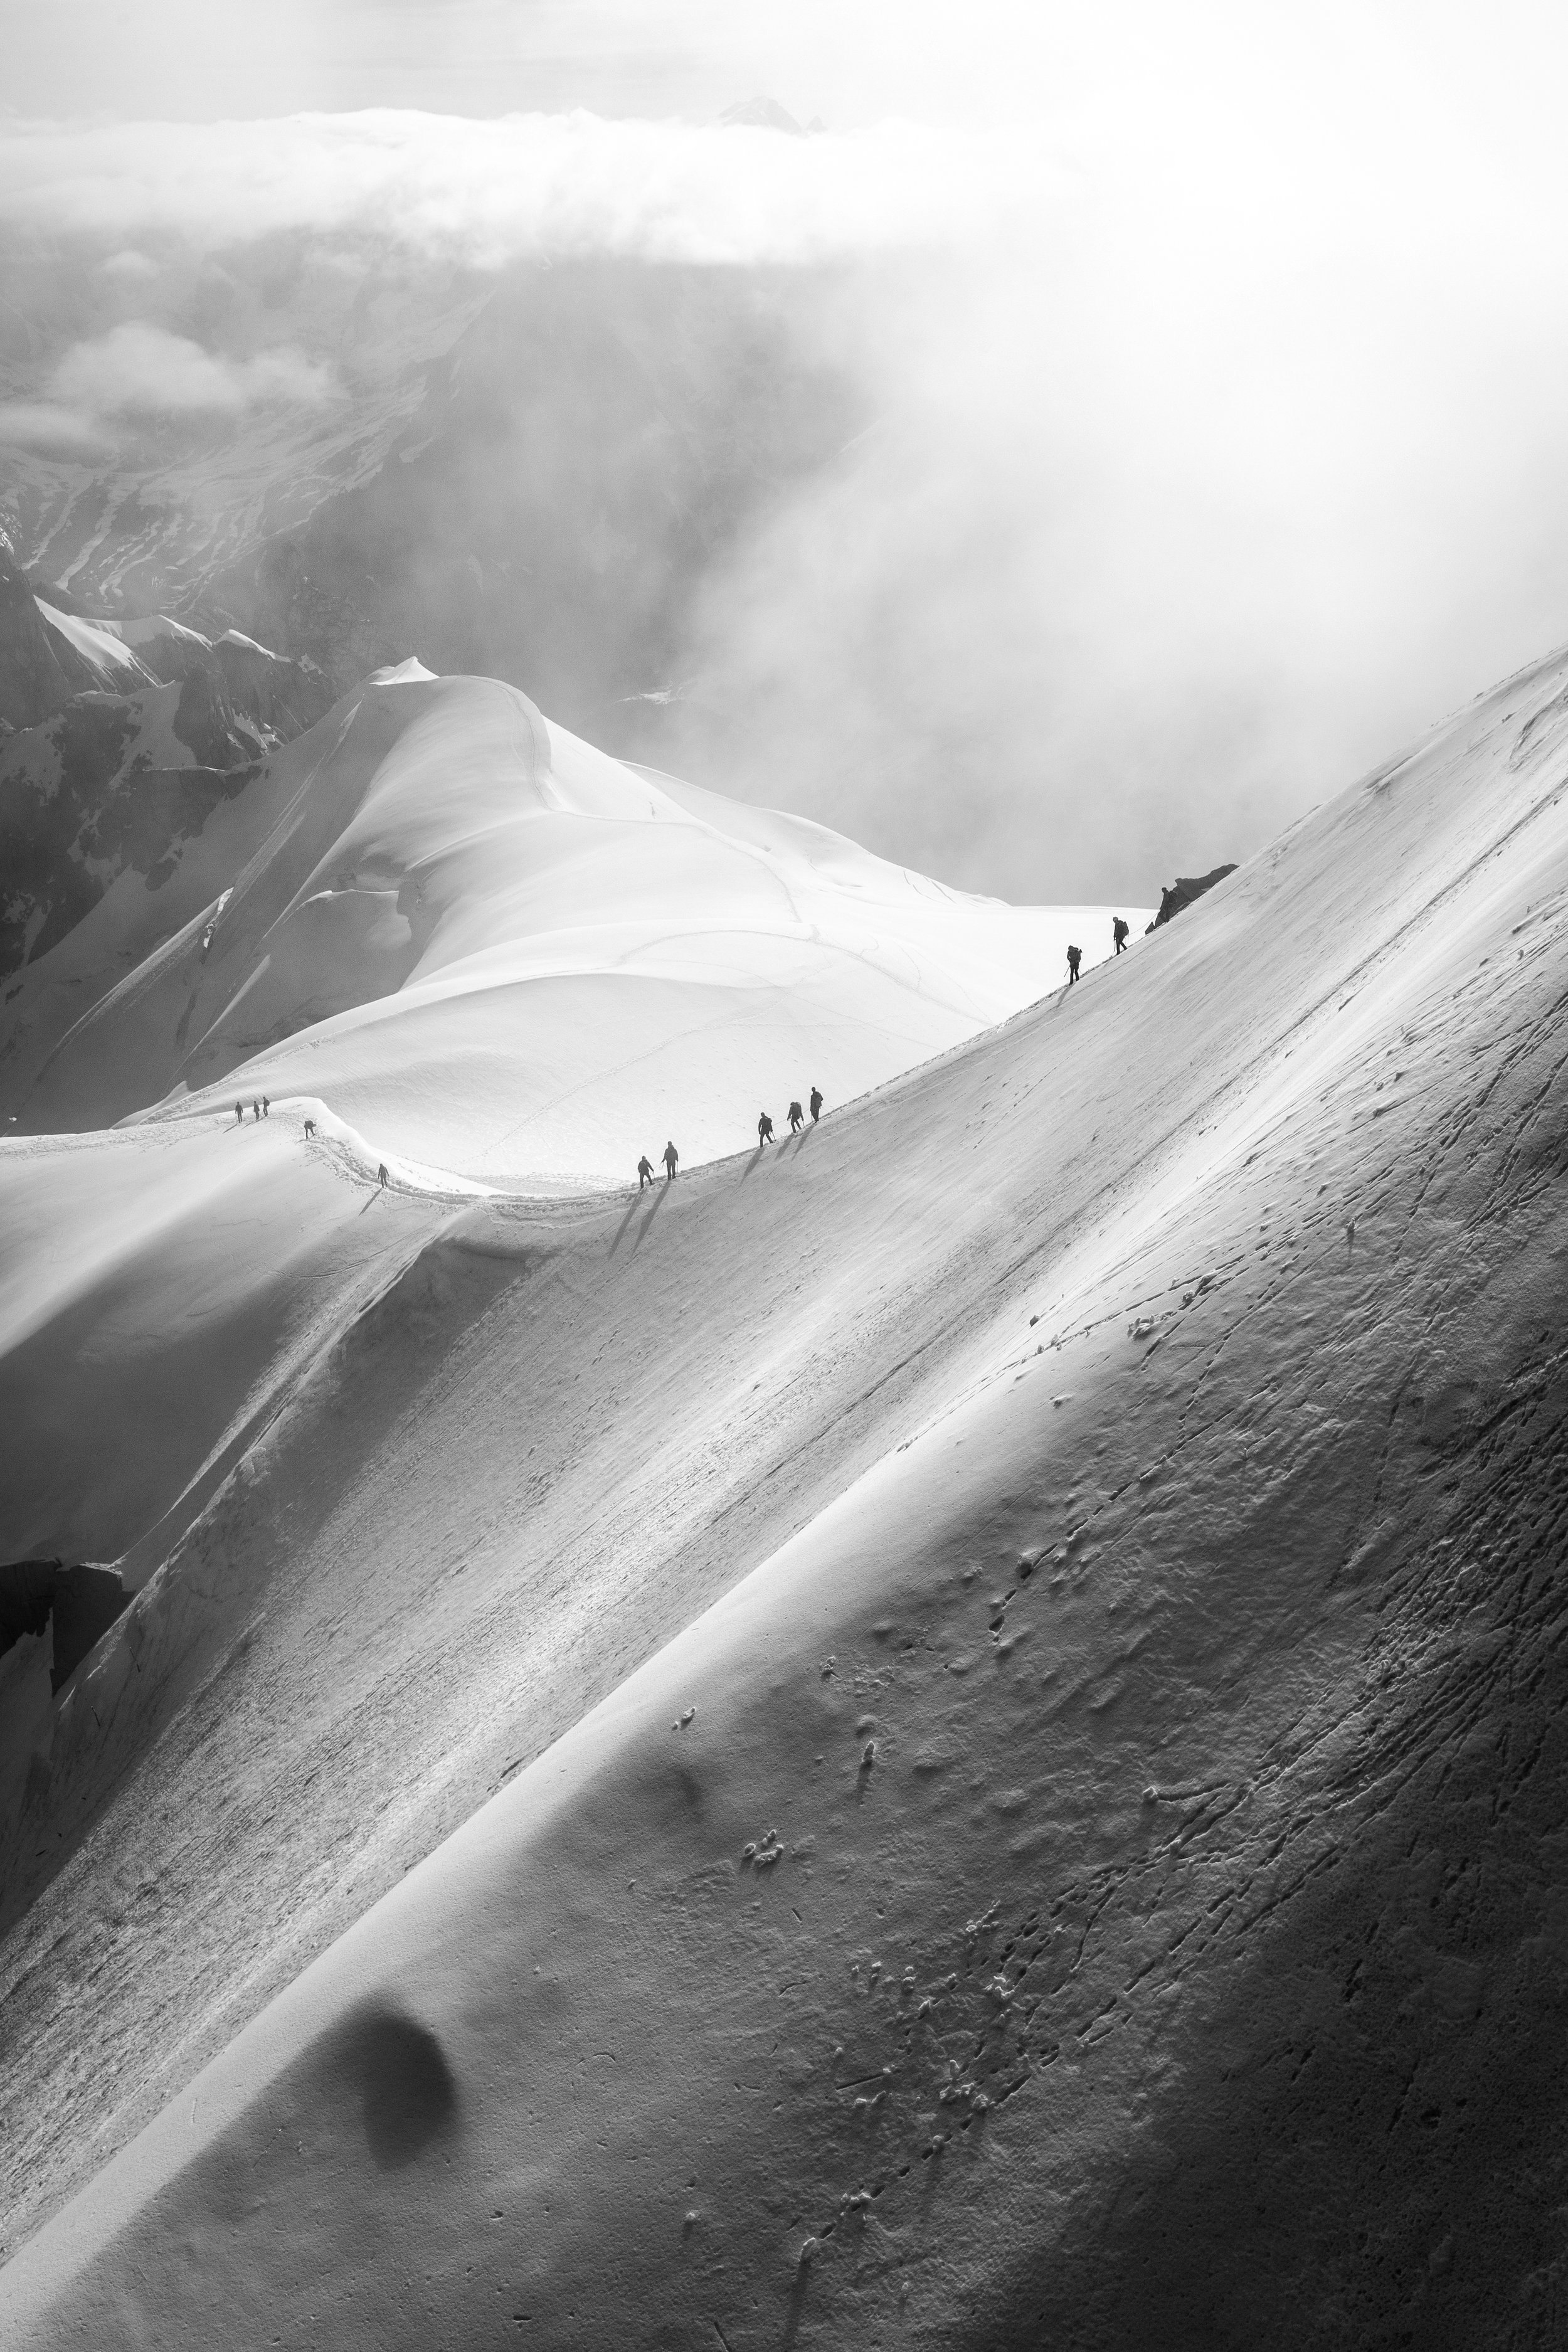 Into the White Abyss